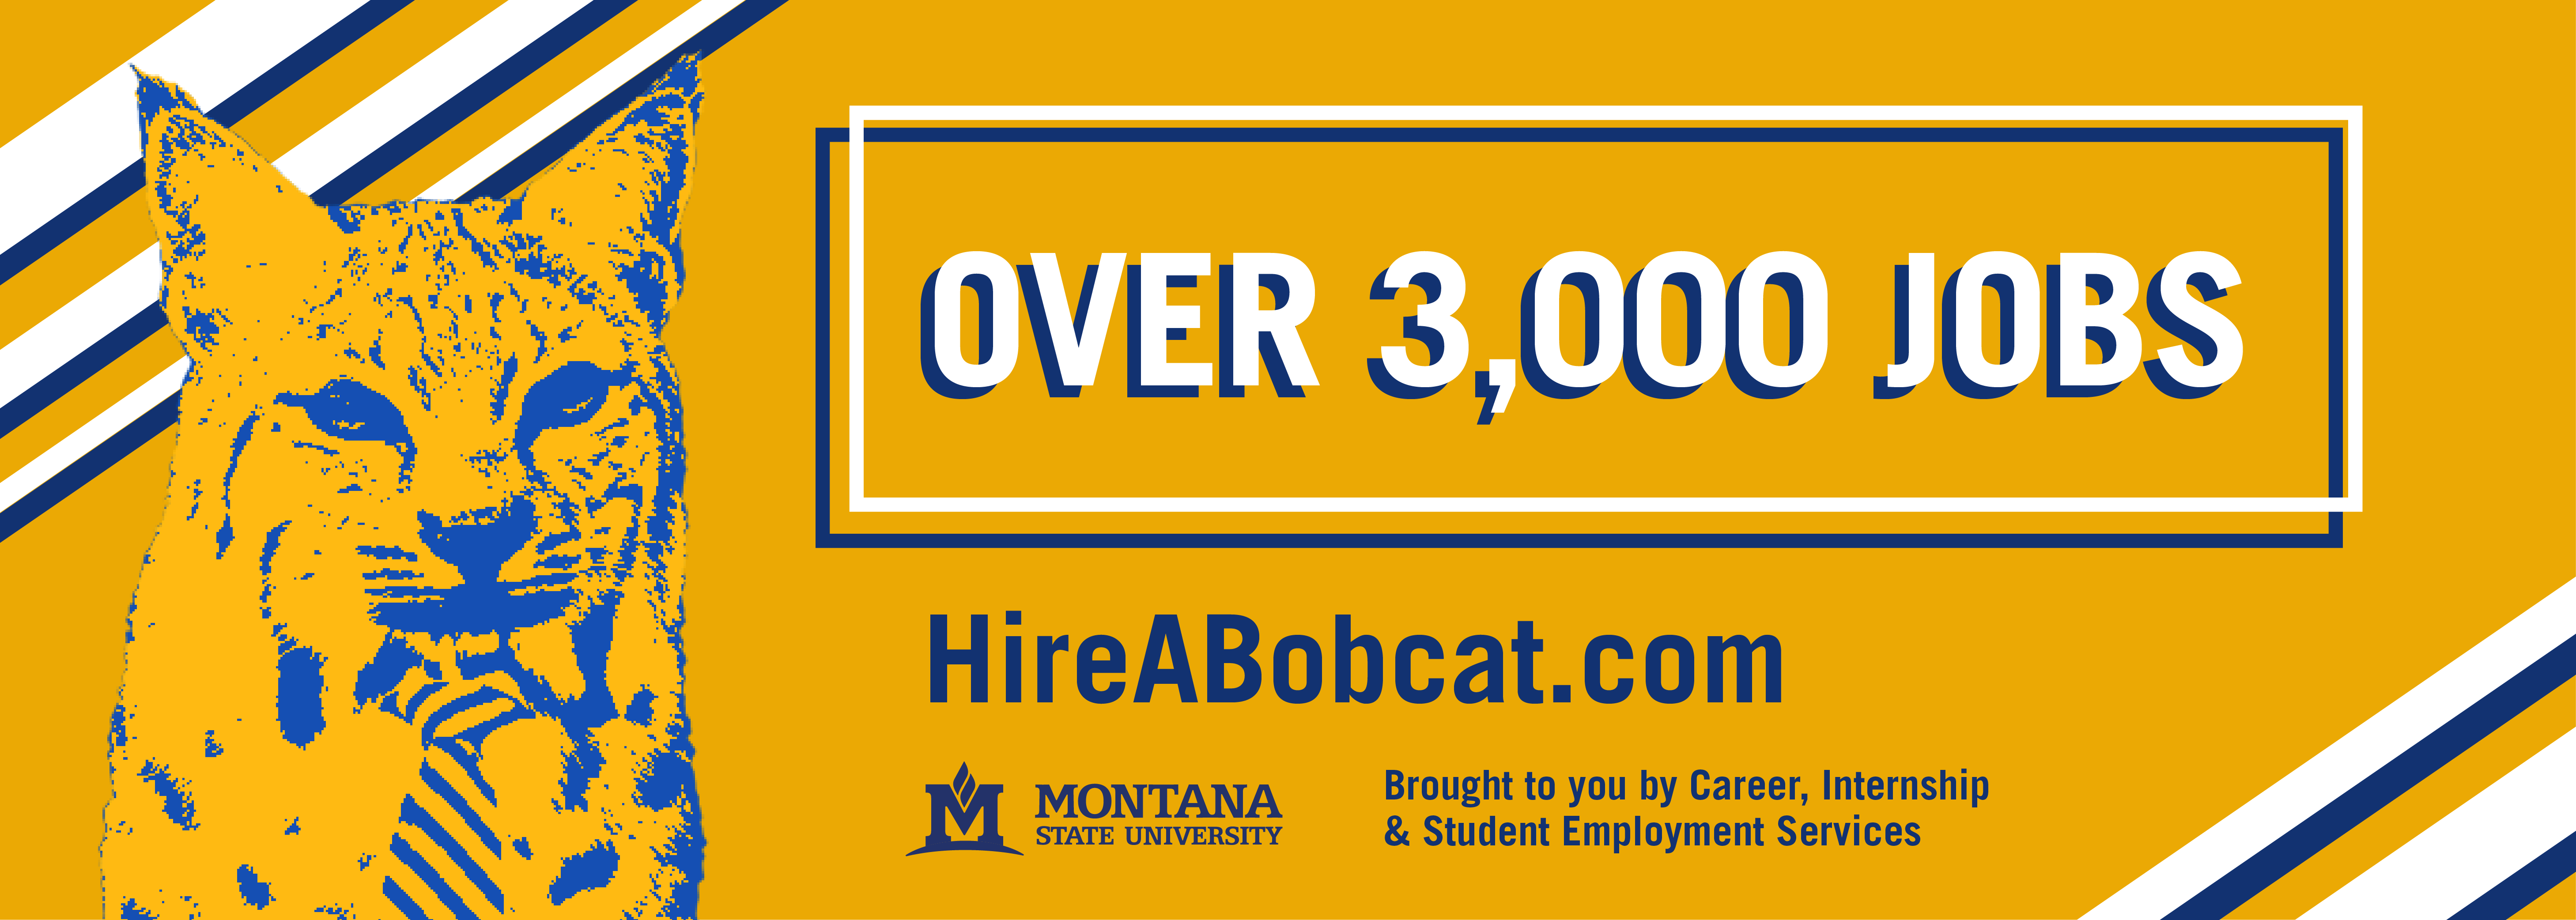 Over 3,000 Jobs. Hireabobcat.com. Brought to you by career, internship, and student employment services